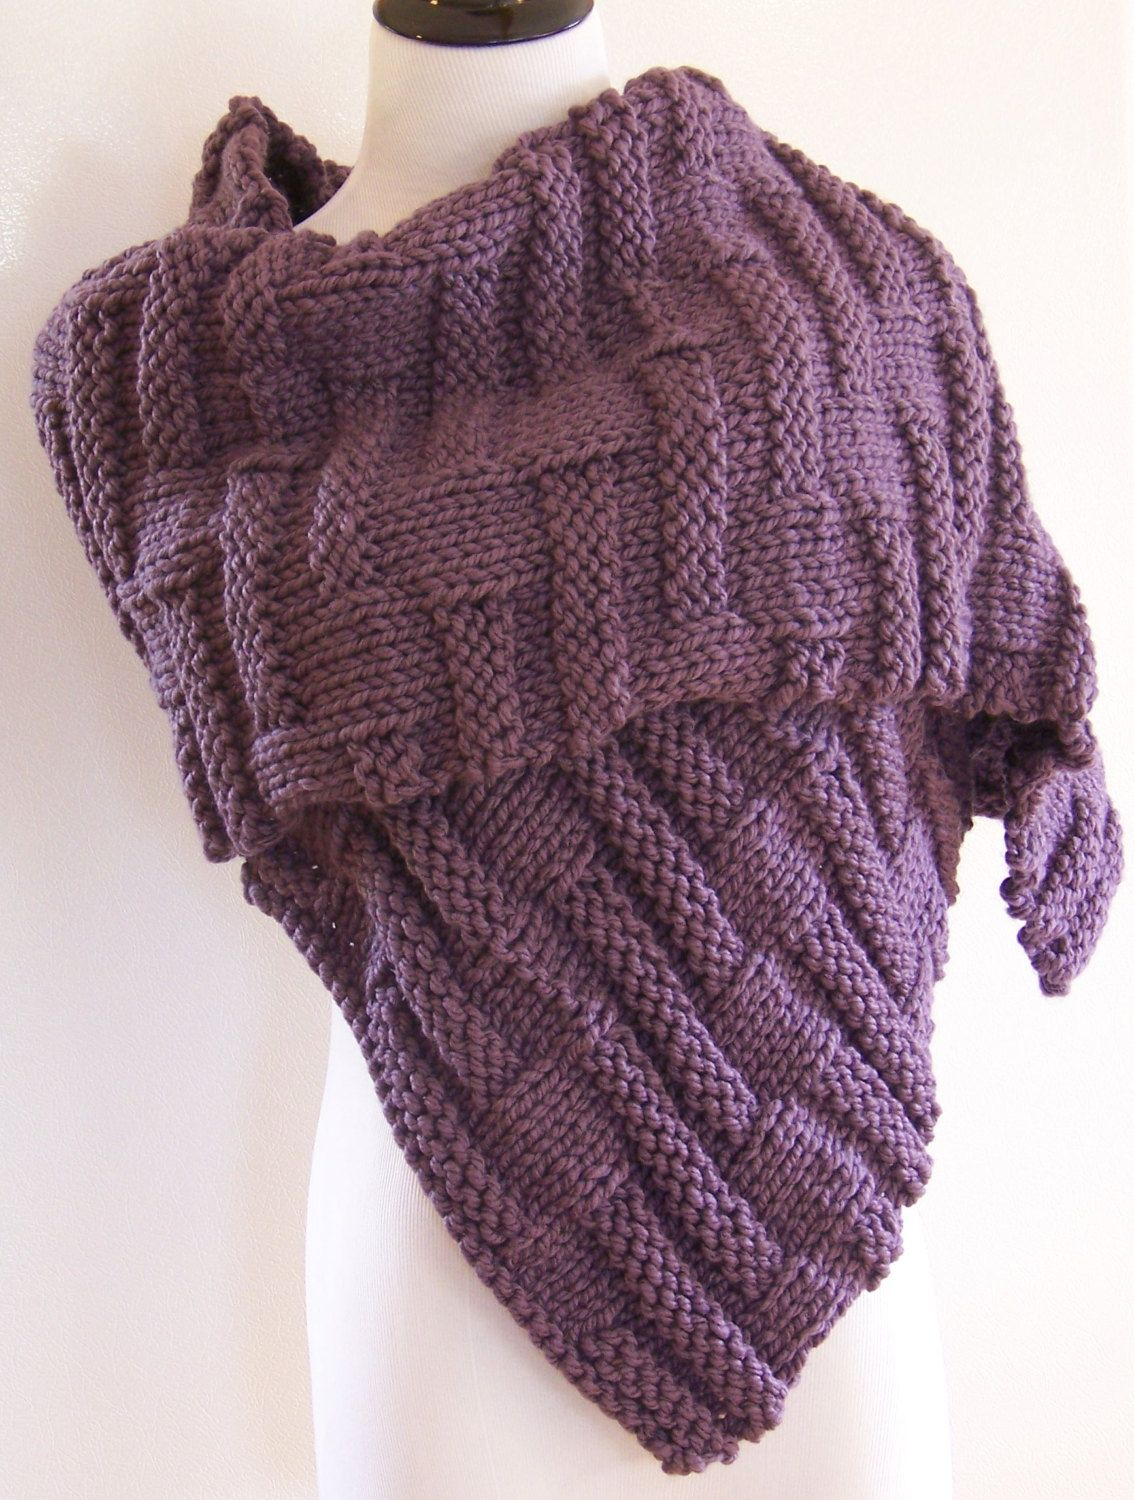 Knitting Pattern for Bayberry Wrap - This rectangular shawl is an ...